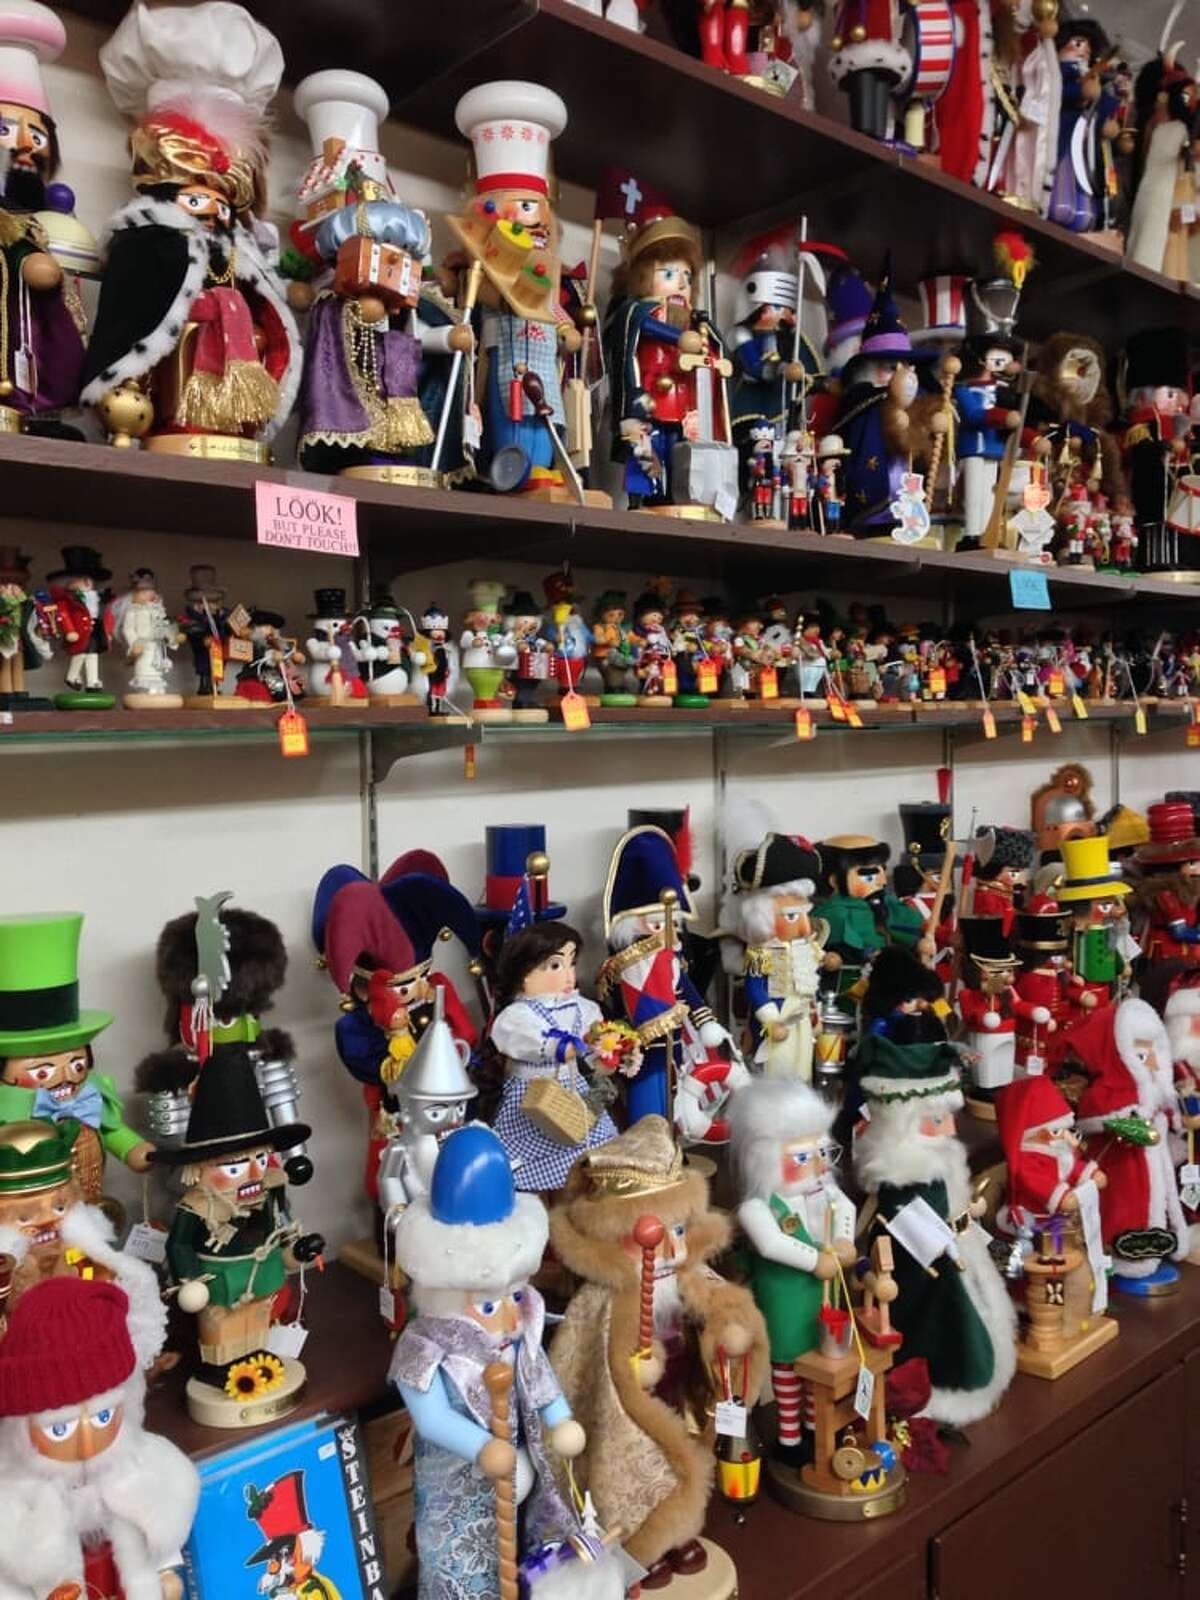 Nutcracker Museum: Nestled within the Cascade Mountains, the Bavarian-styled village of Leavenworth boasts an army of more than 7,000 nutcrackers donated across the globe. The museum's guest book notes visitors from more than 80 different countries, and brings in bus loads of tourists annually. The museum's major takeaway?